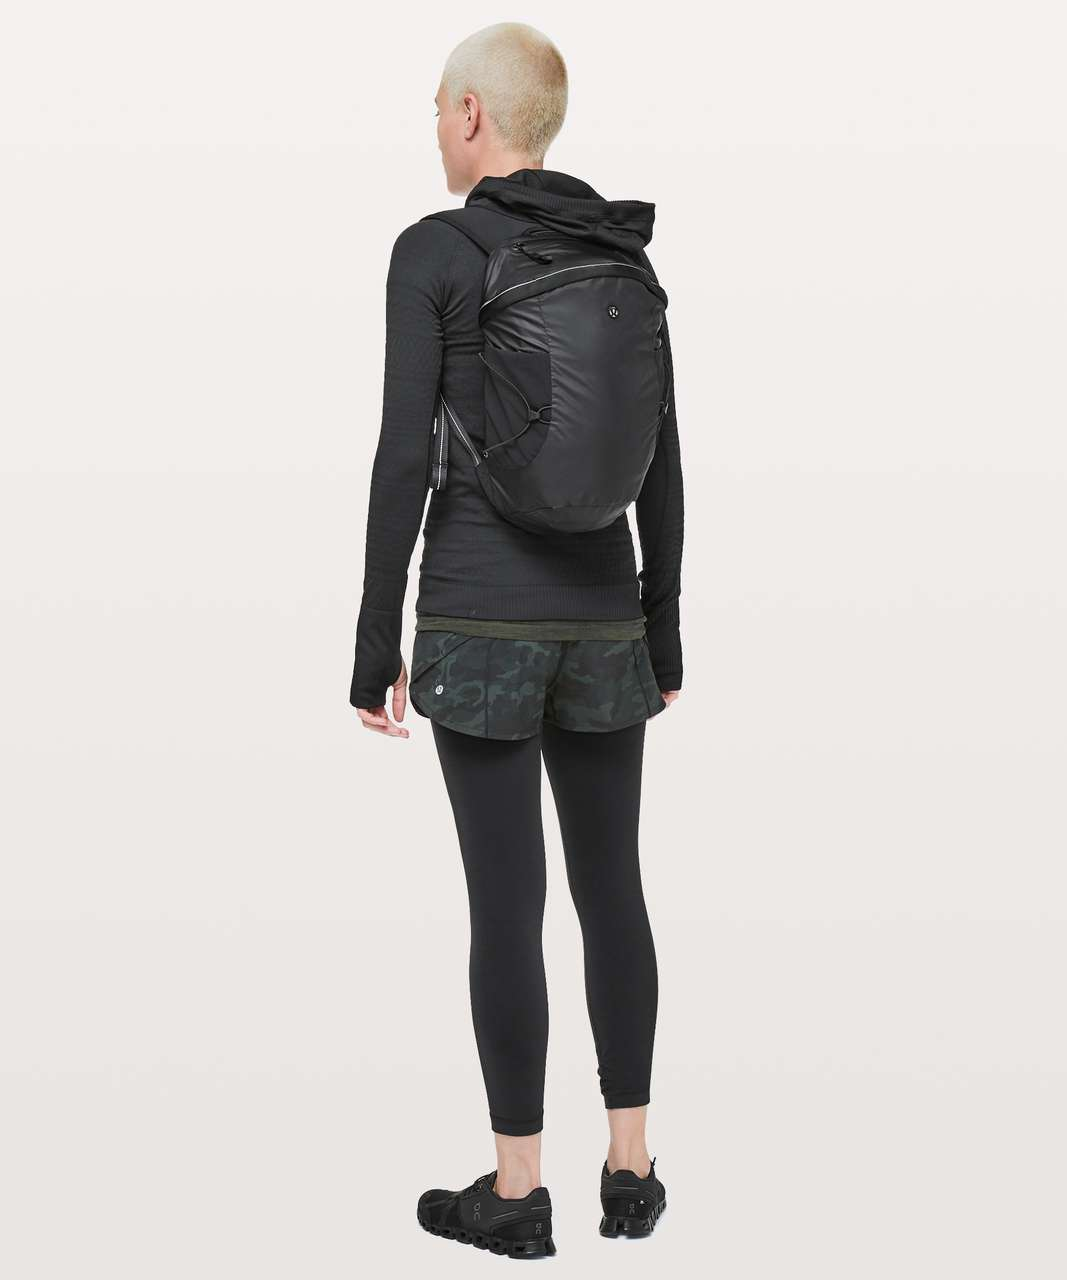 Lululemon Run All Day Backpack II *13L - Black